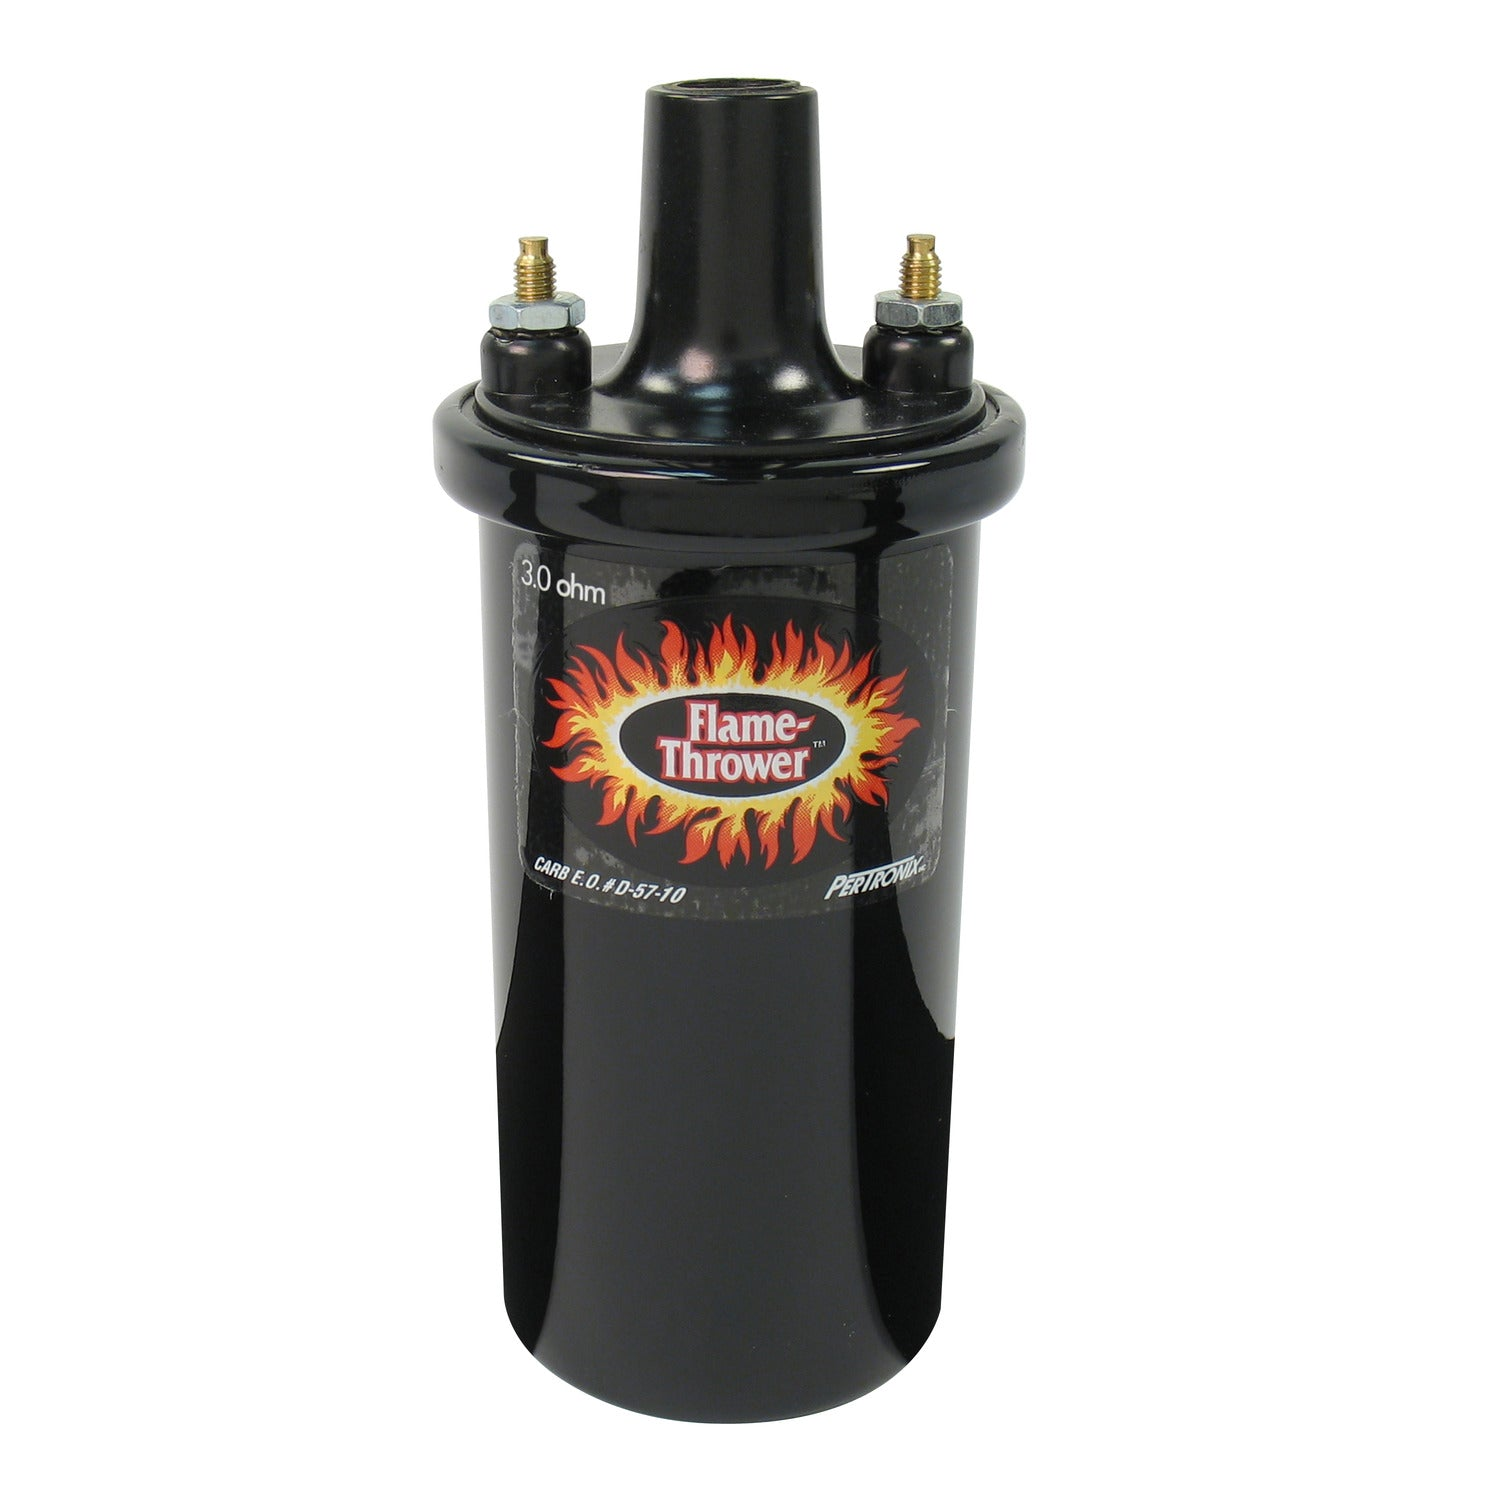 PerTronix 40511 Flame-Thrower Coil 40,000 Volt 3.0 ohm Black